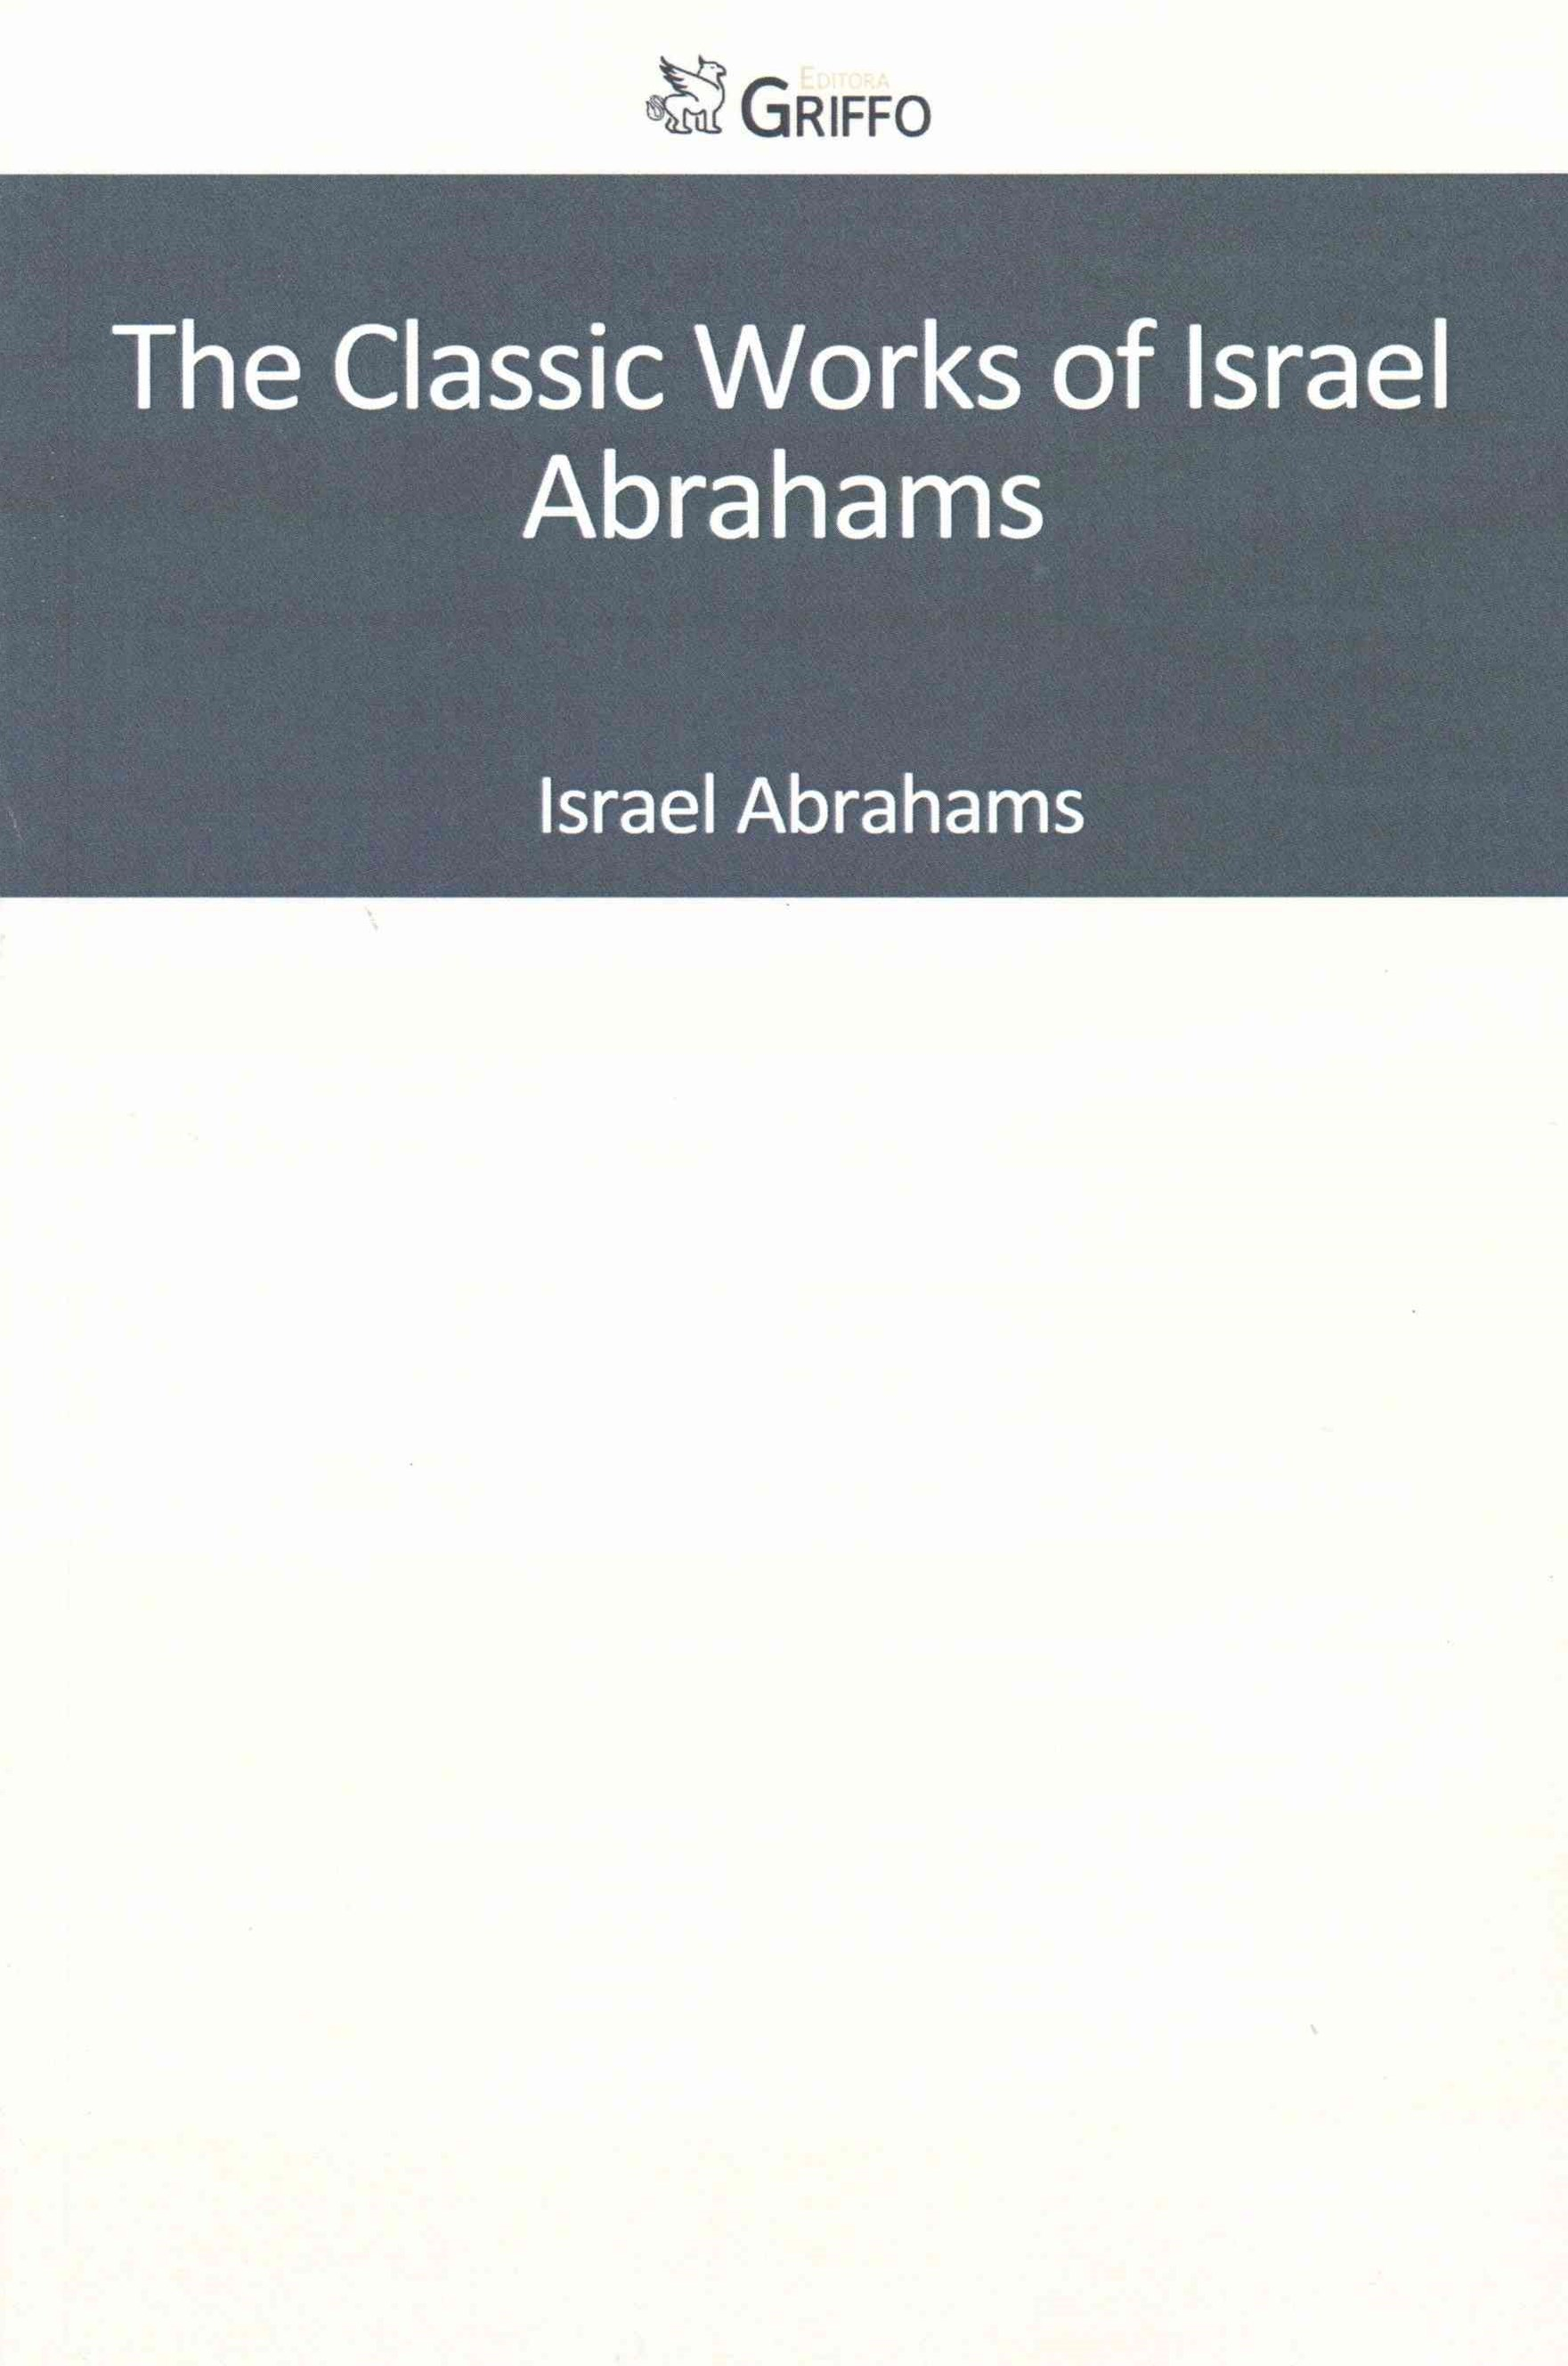 The Classic Works of Israel Abrahams